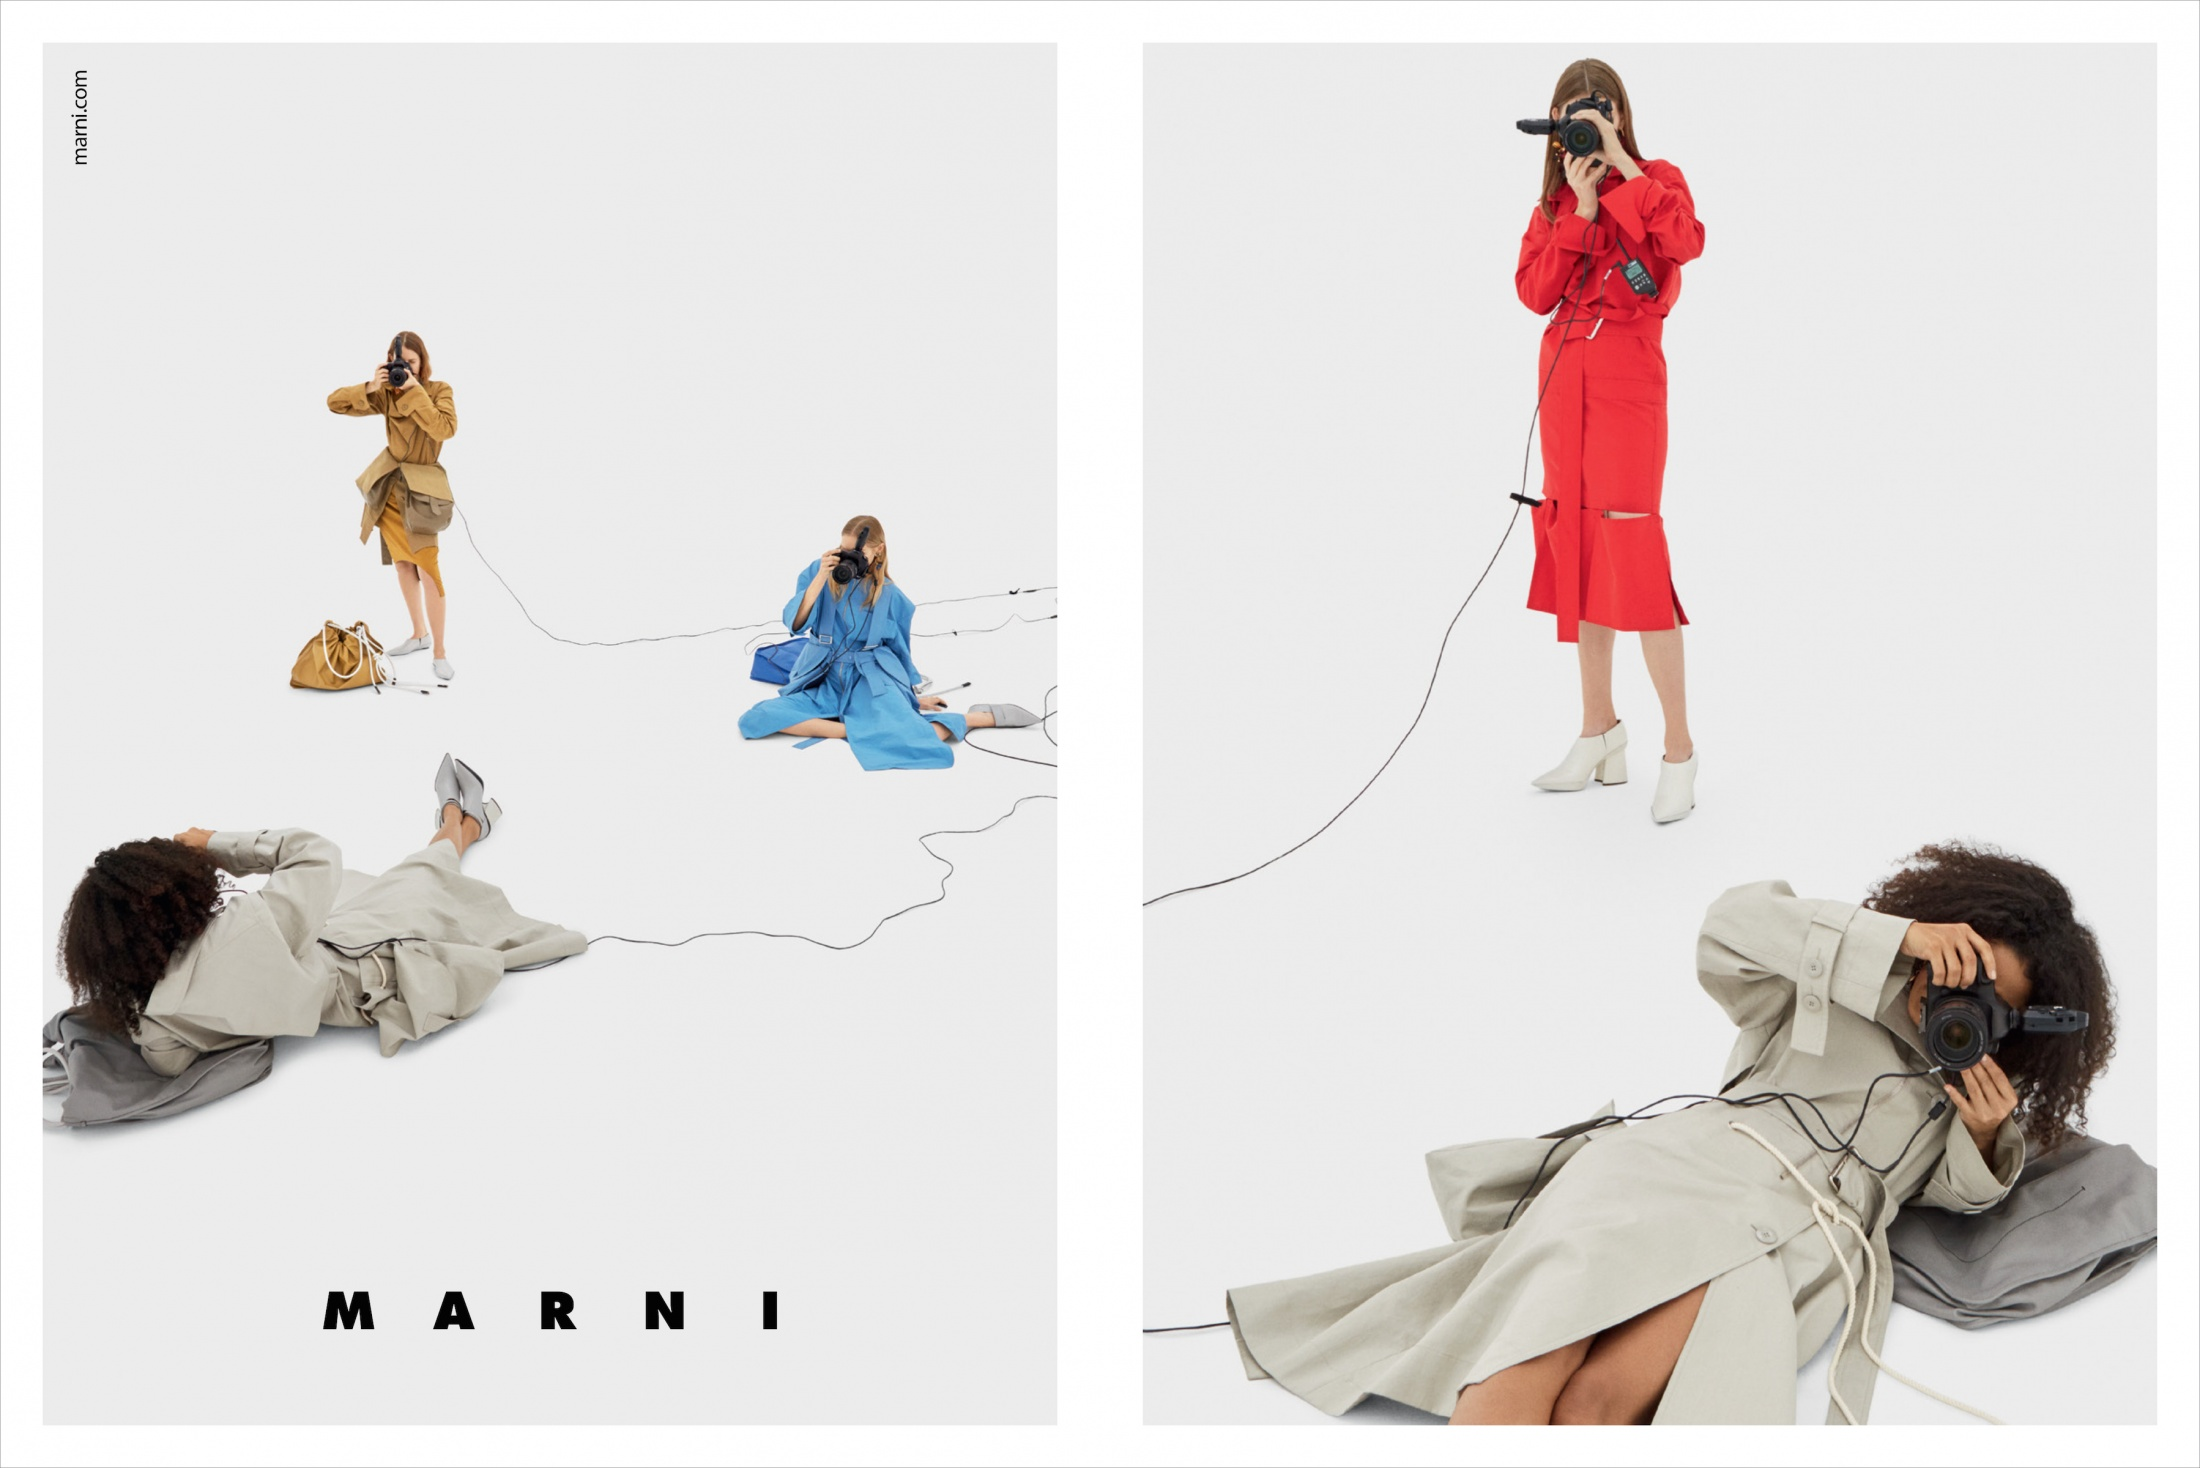 Thumbnail for Marni Spring Summer 2017 Advertising Campaign